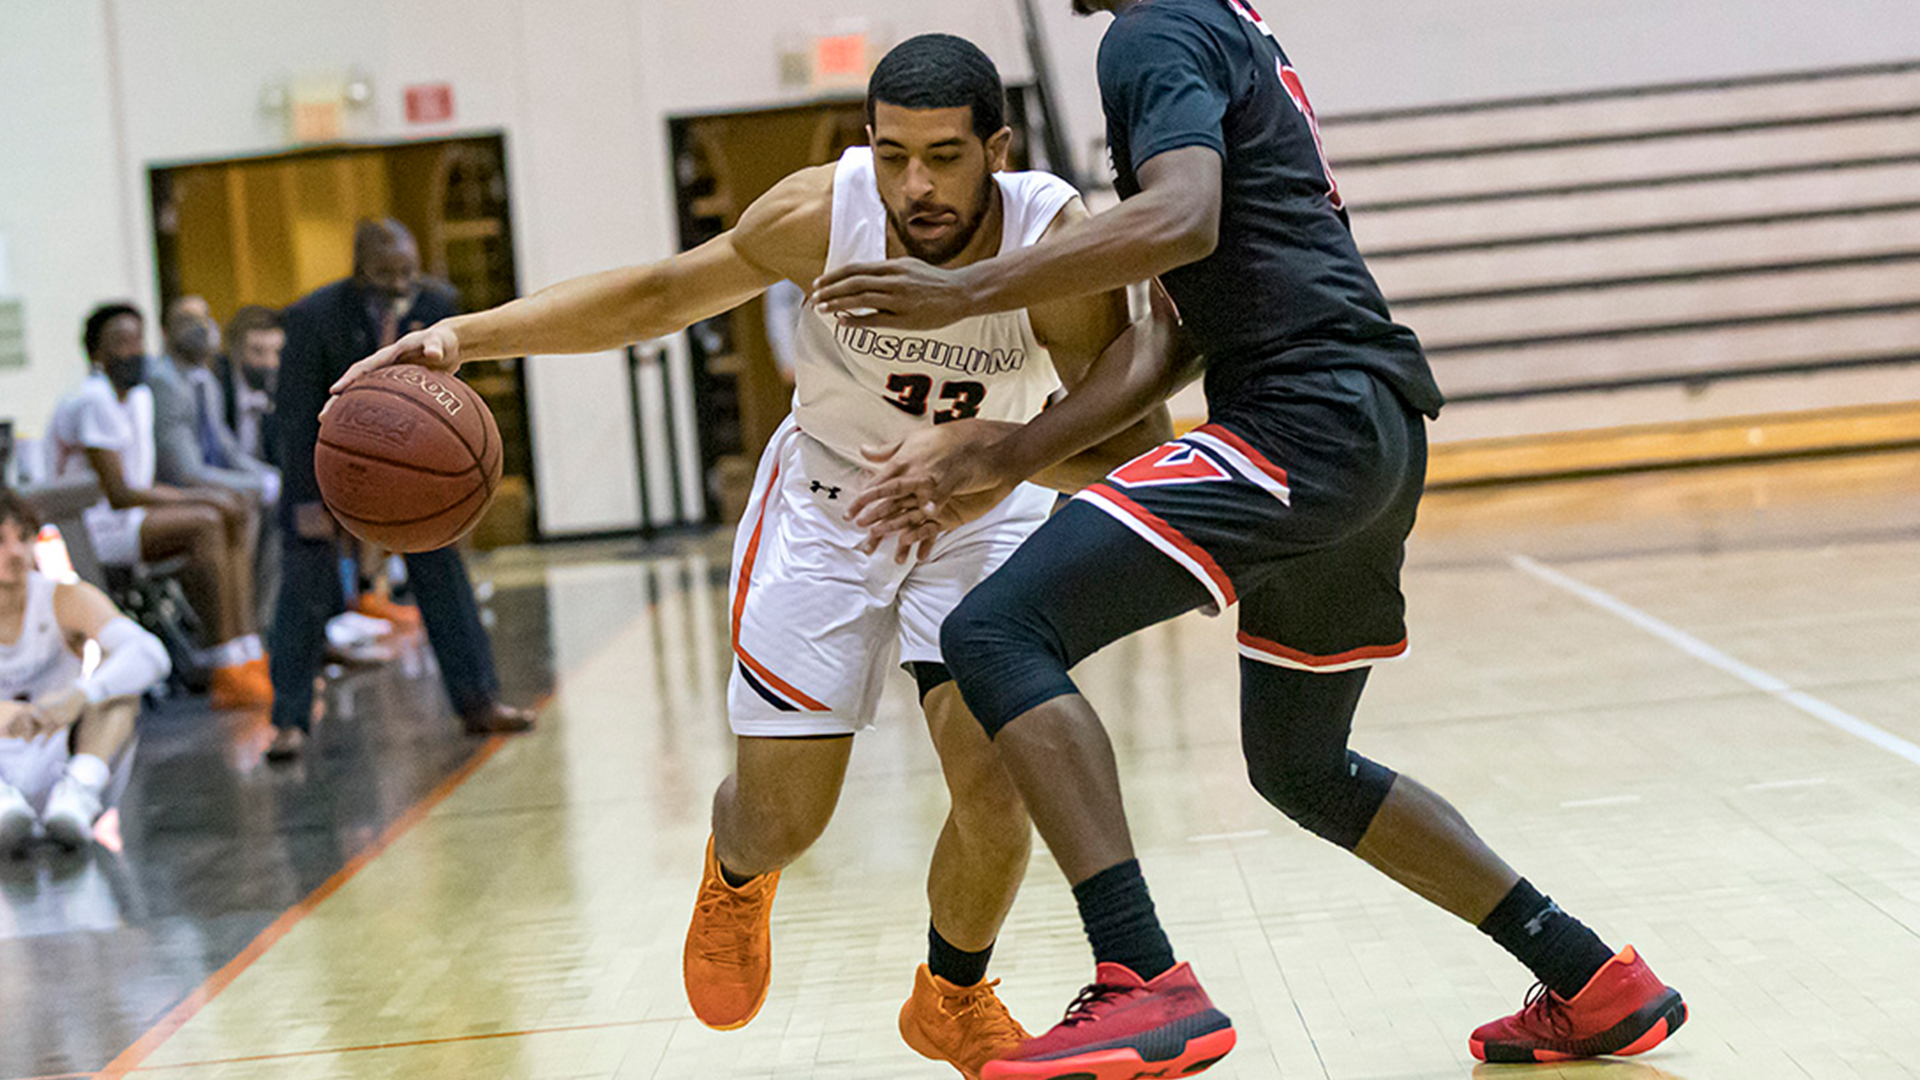 Gibson has career night in Tusculum's 109-96 win over UVA Wise